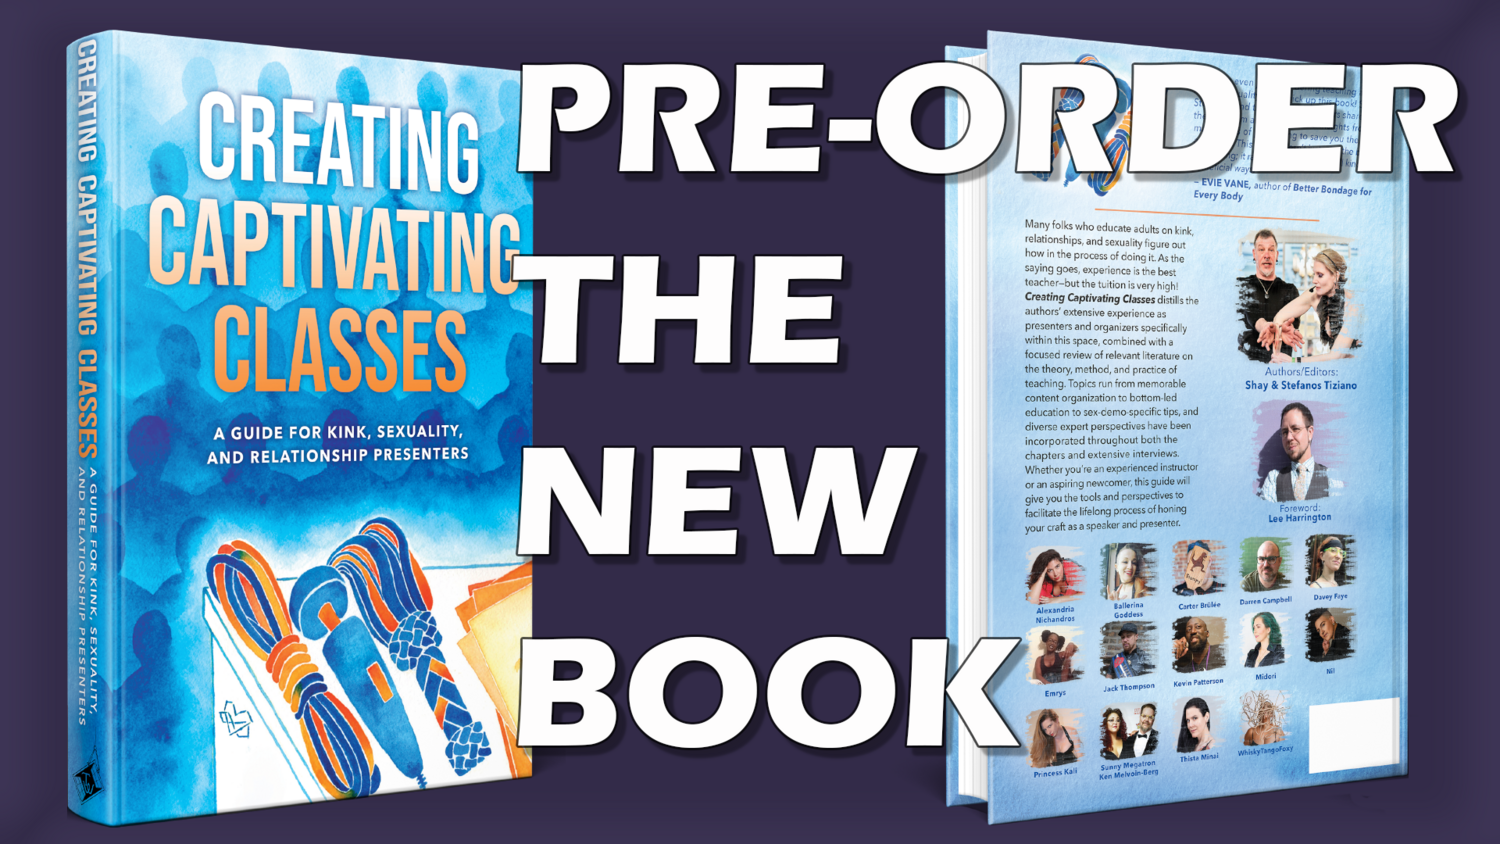 Creating Captivating Classes PRE-ORDER